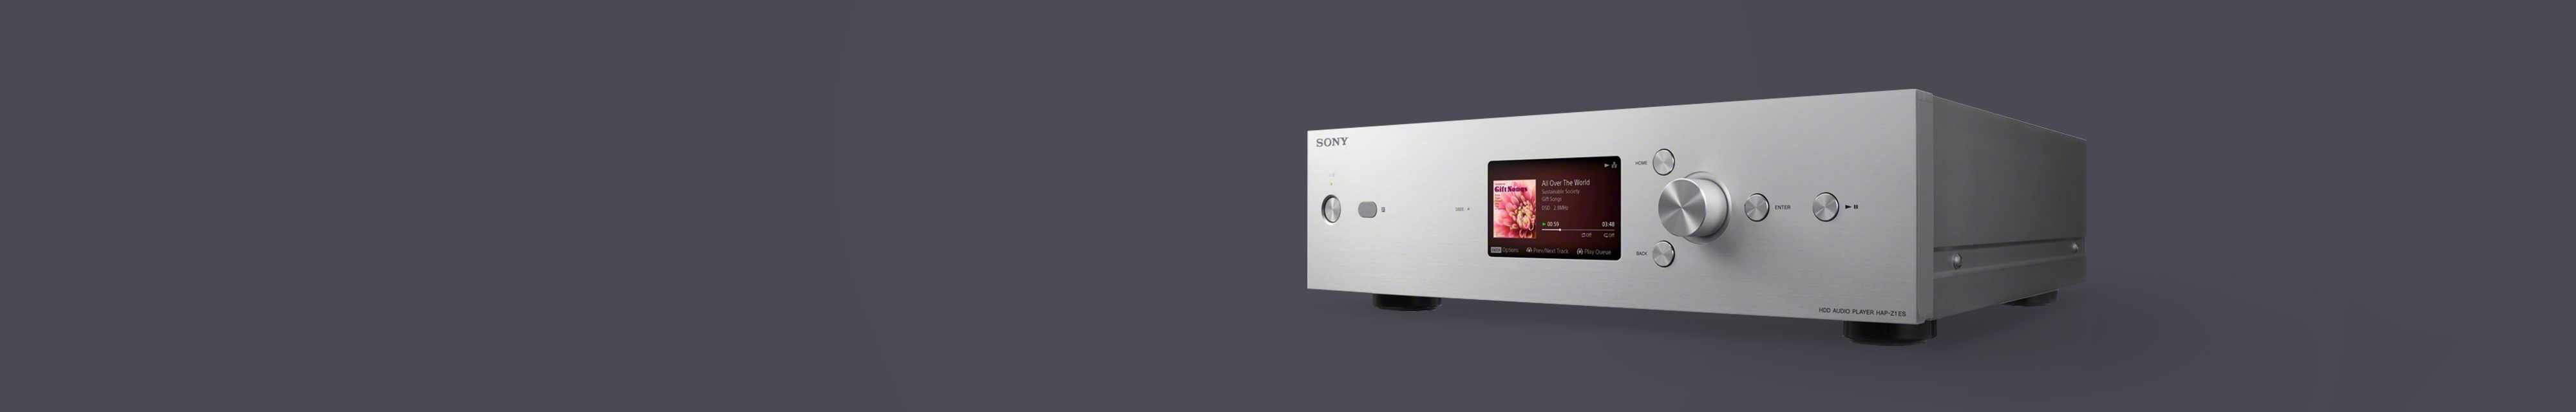 TV Home Theatre Hometheatre Amplifier